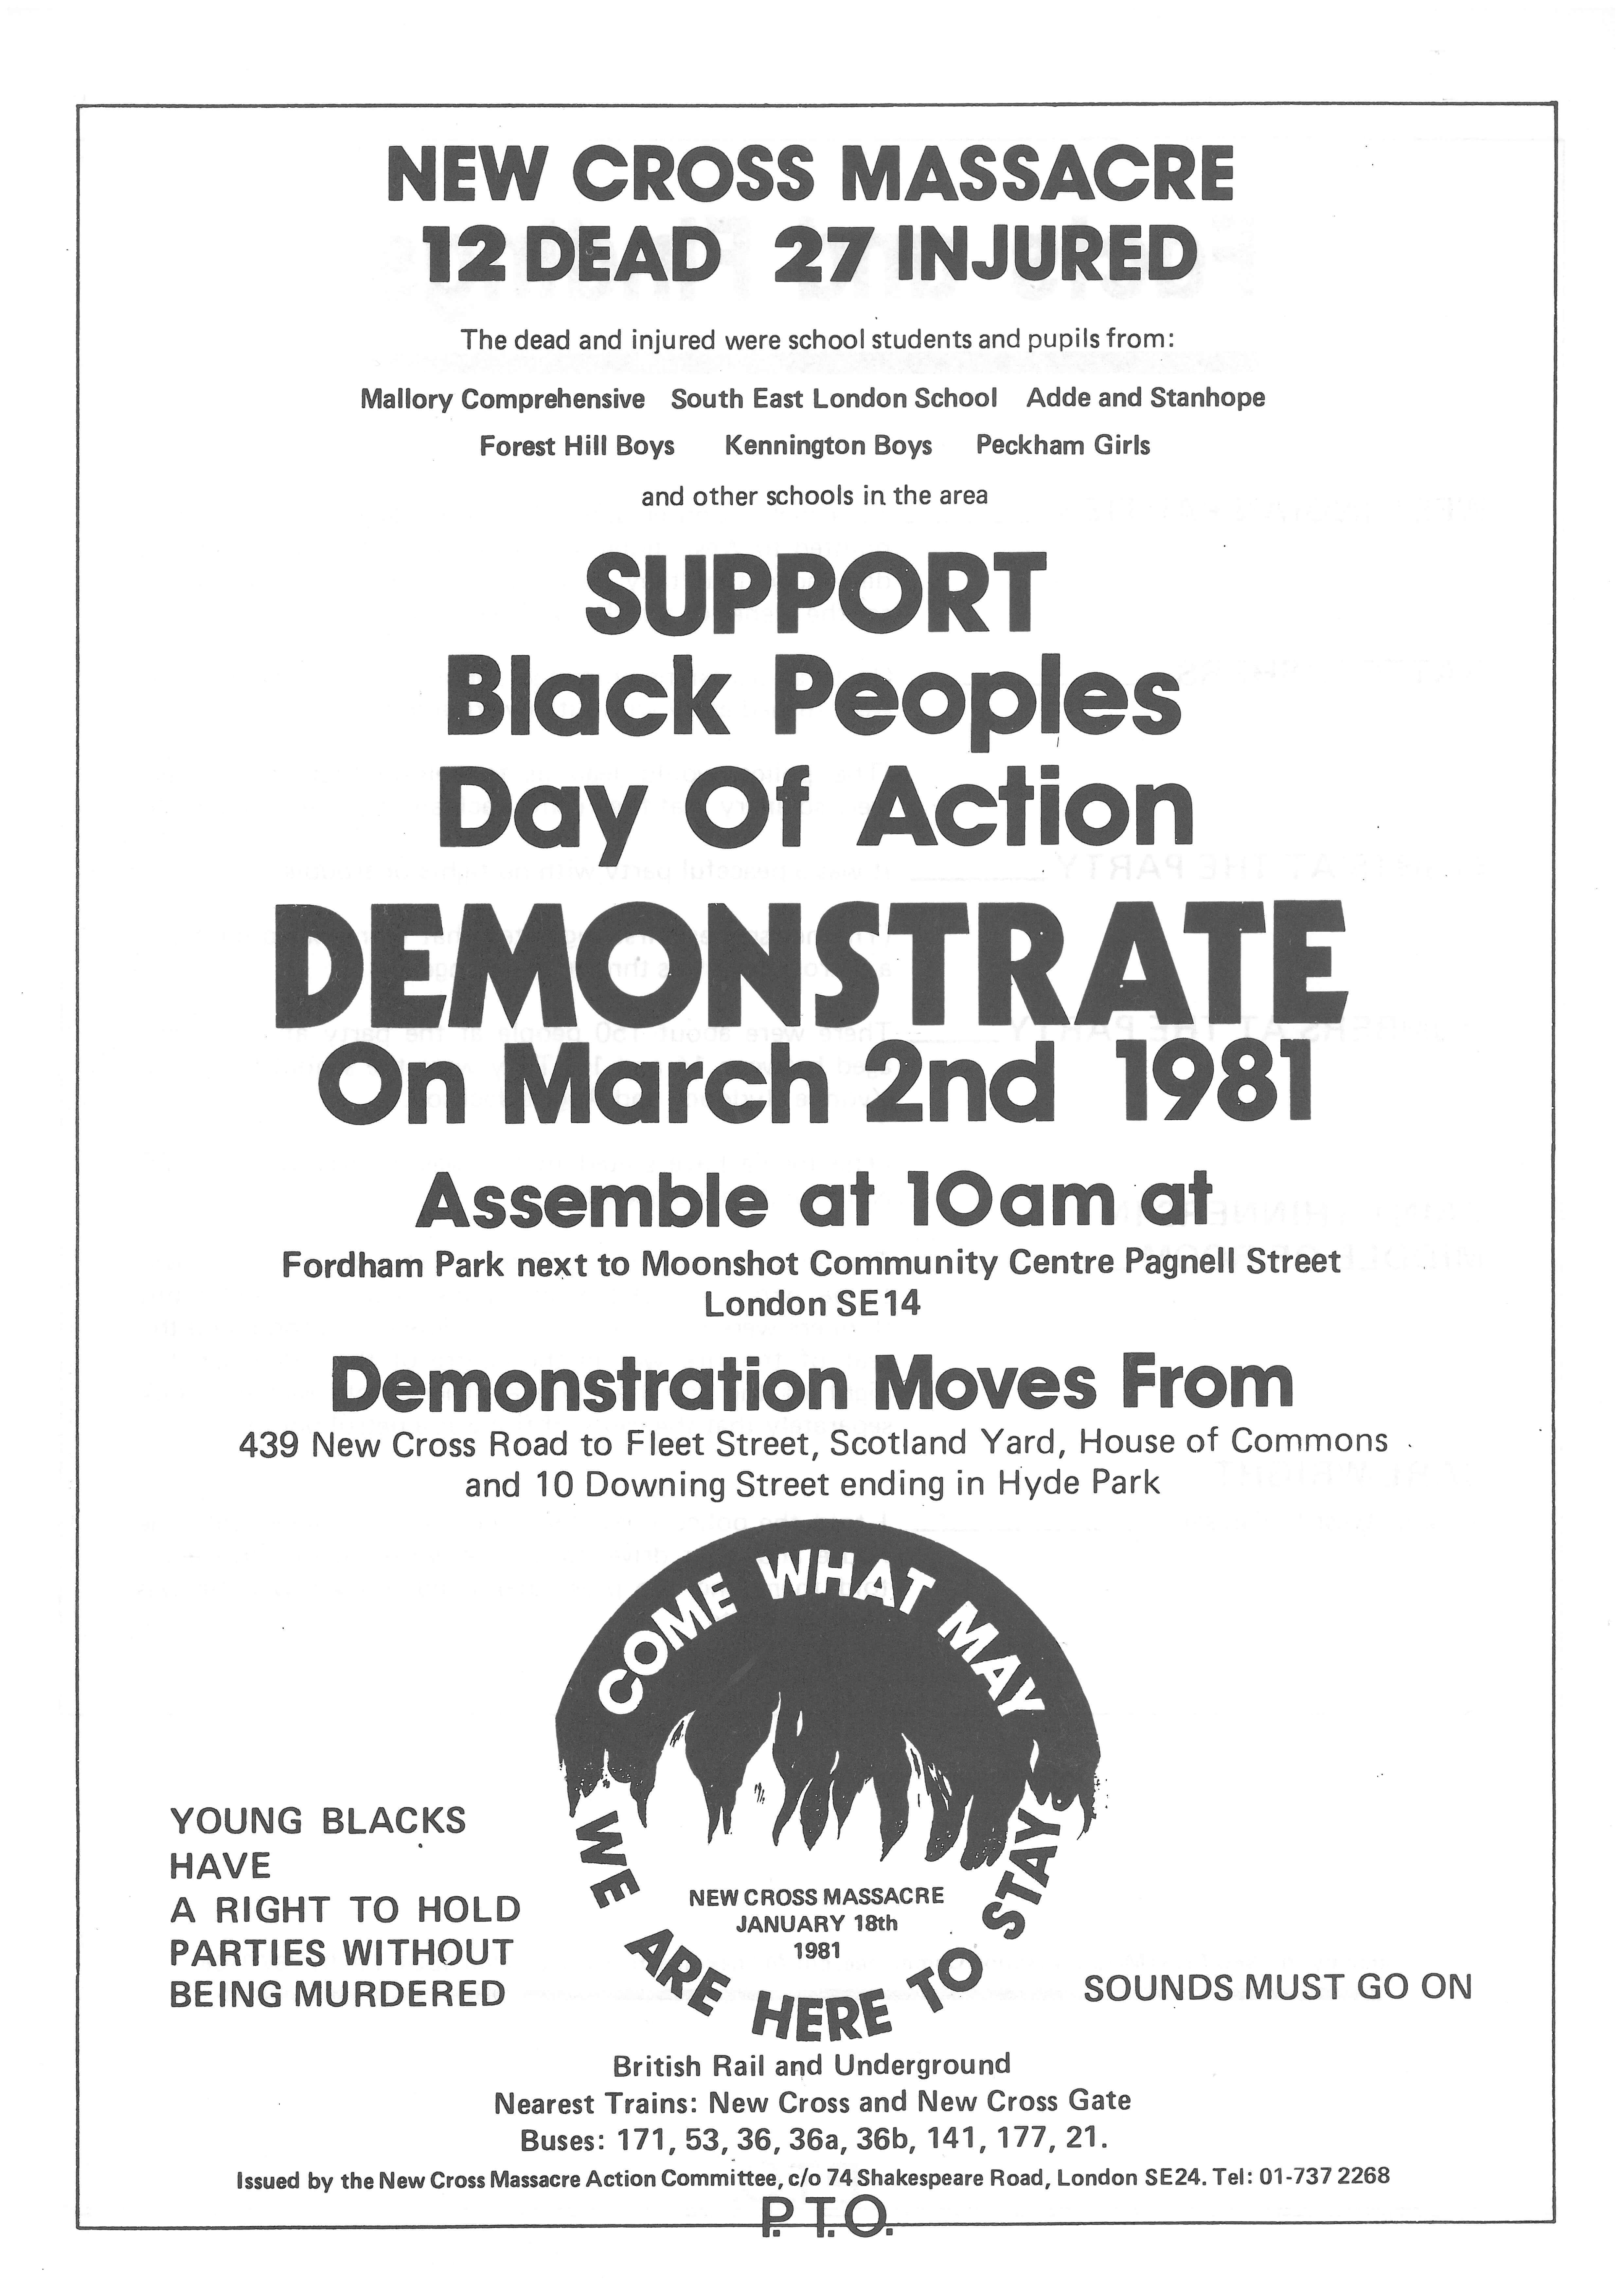 Black and white text-based flyer, carrying the New Cross Massacre Campaign logo, with the slogan Come What May we are Here to Stay.